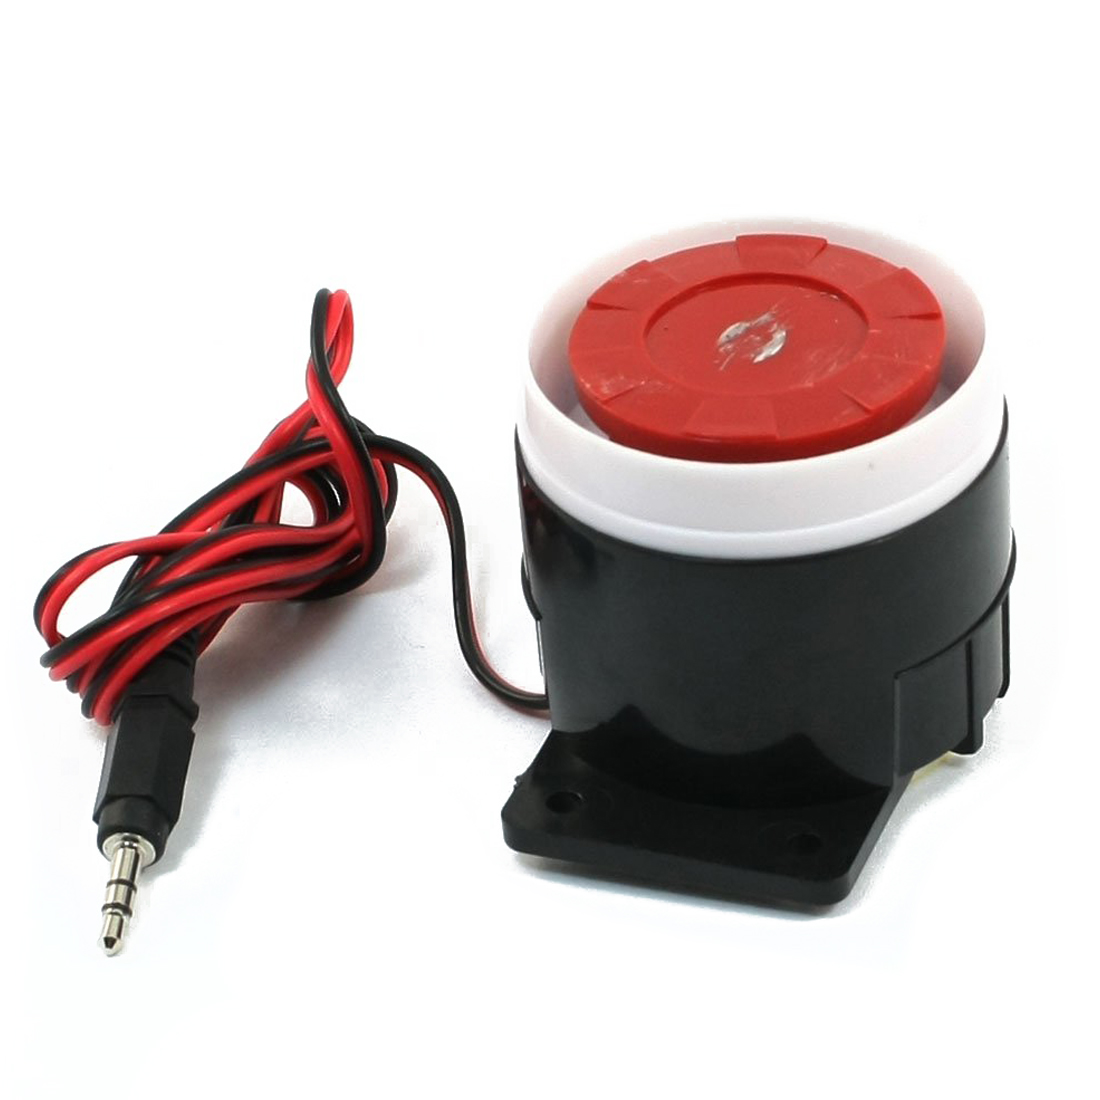 TTKK Continuous Sound Decibel Piezo <font><b>Buzzer</b></font> IC Alarm Speaker DC 12V <font><b>120db</b></font> Black+Red image